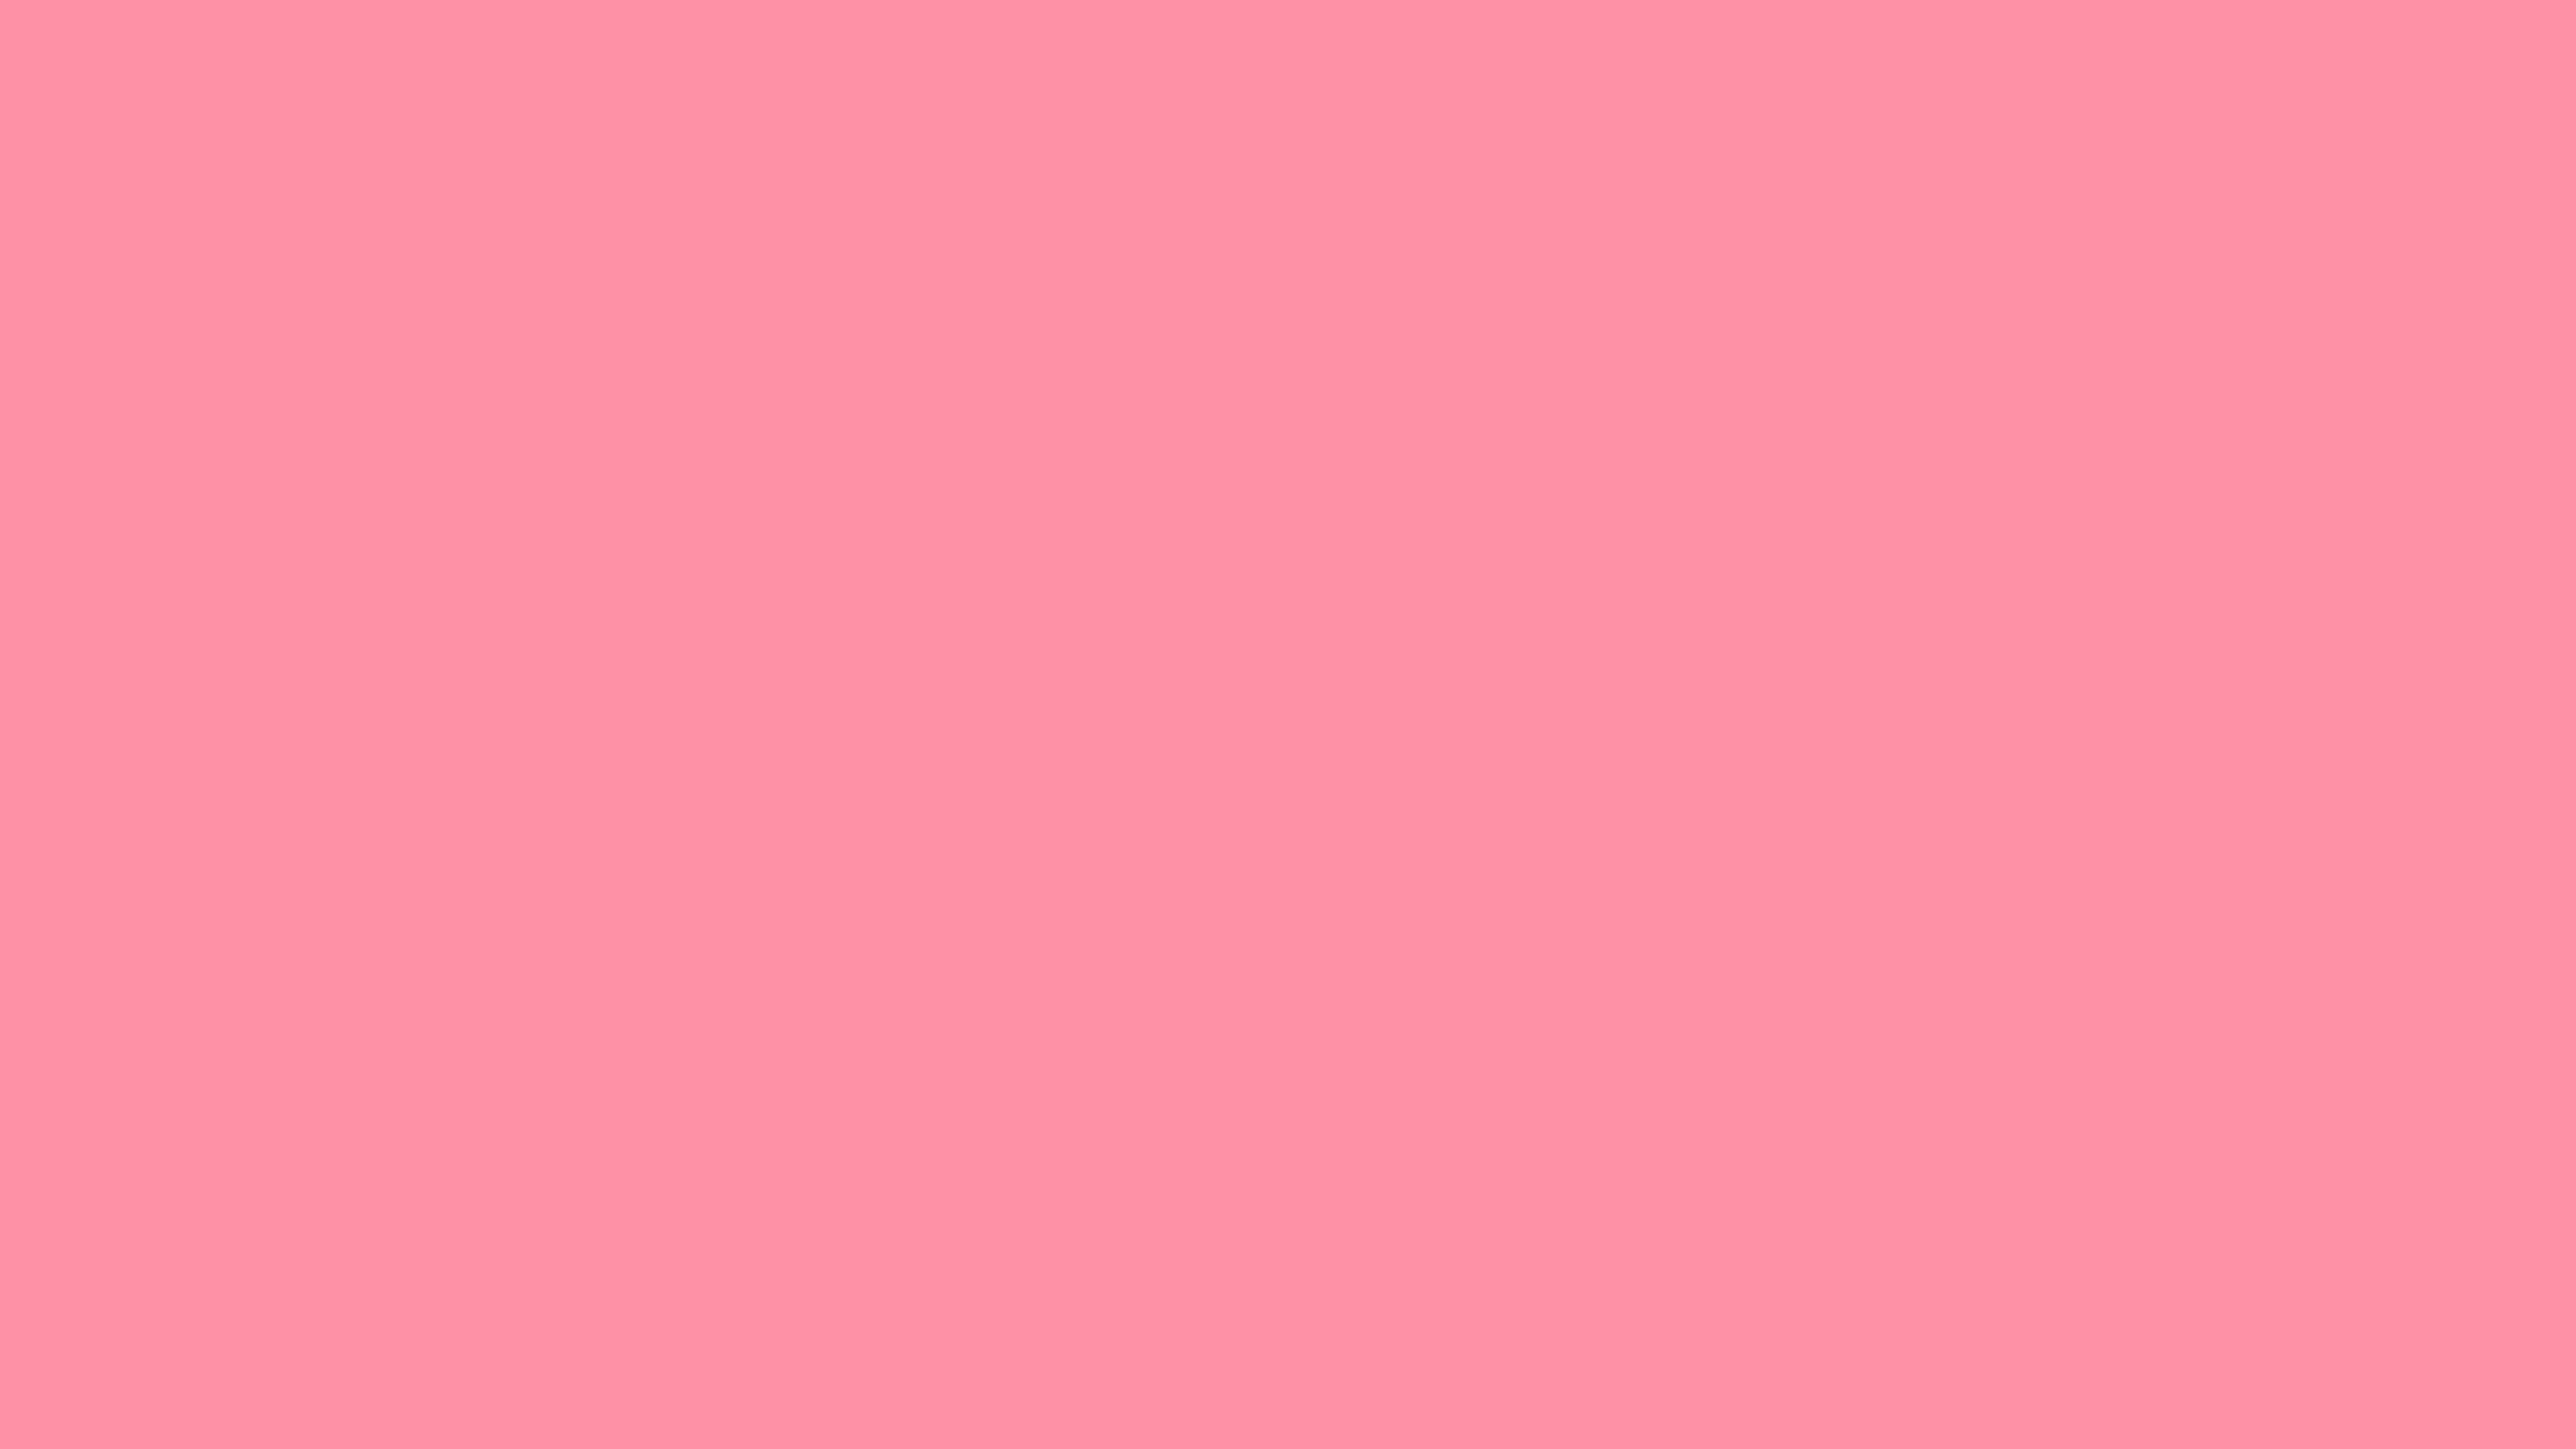 3840x2160 Salmon Pink Solid Color Background